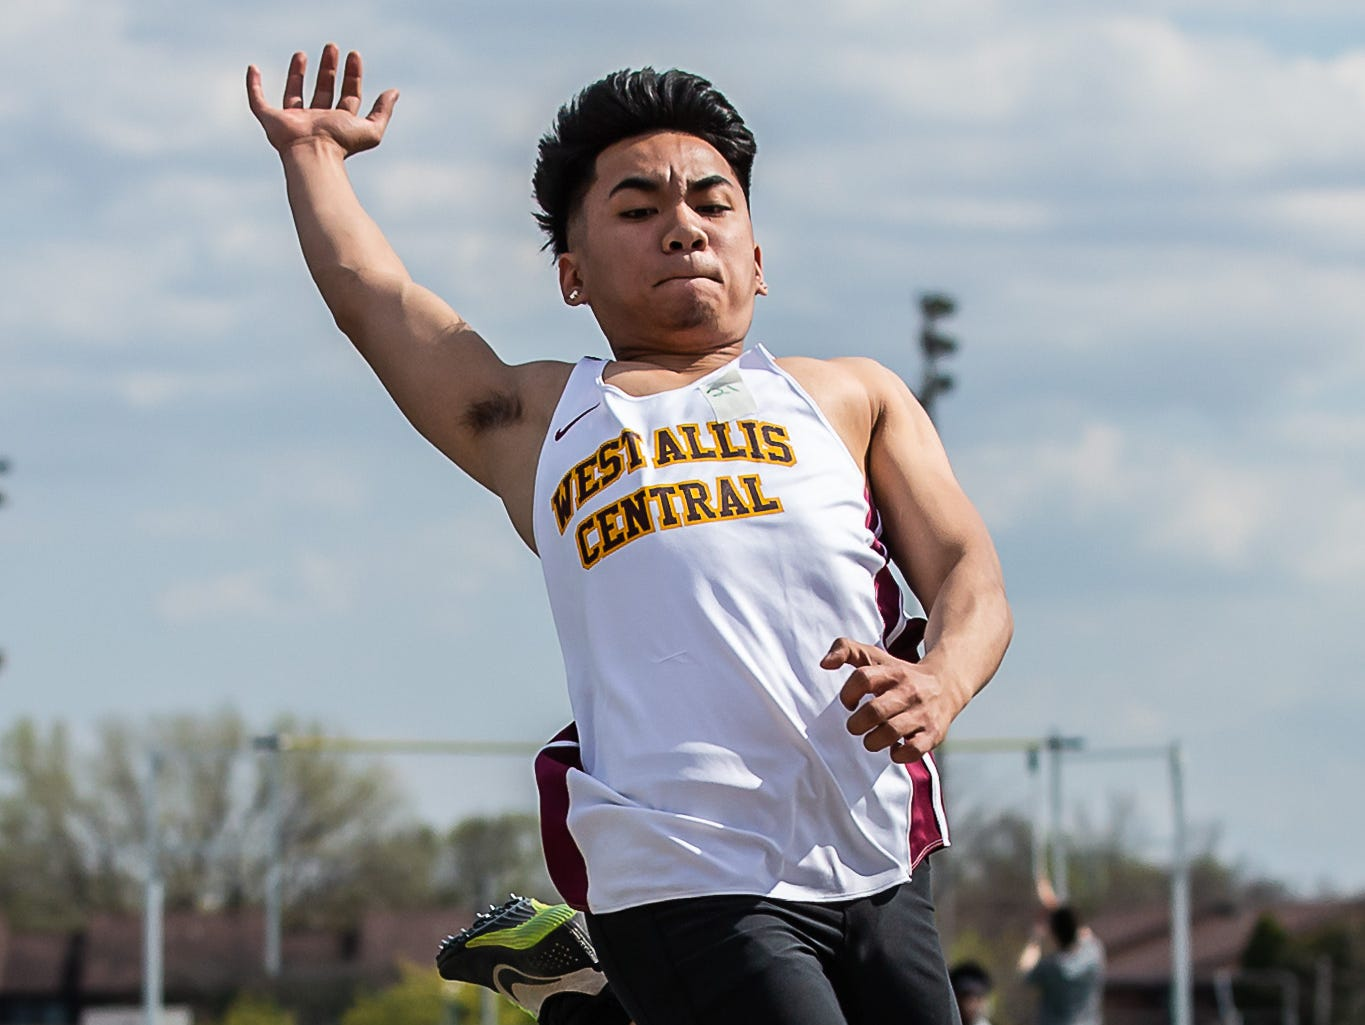 West Allis Central's Kevin Nguyen competes in the long jump at the Woodland Conference Track and Field Championships in West Allis on Tuesday, May 14, 2019.